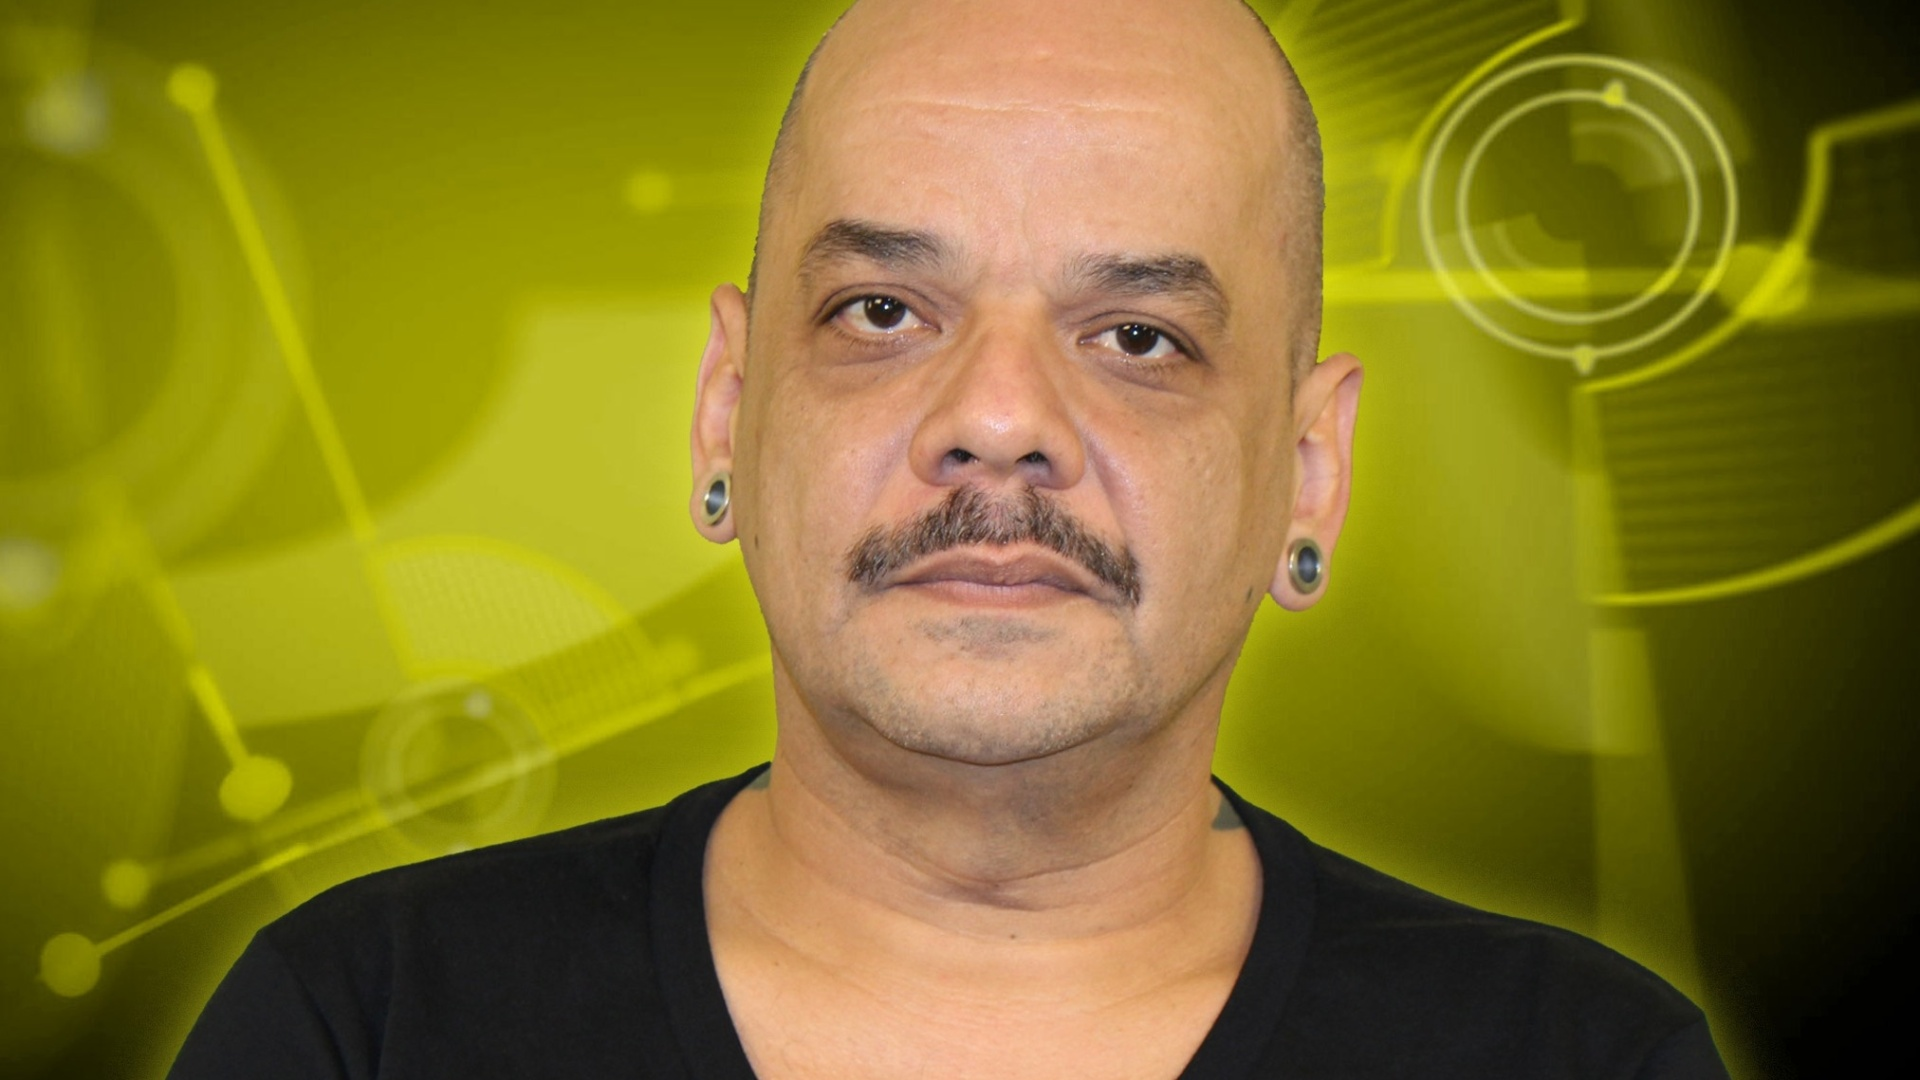  Joo Carvalho, 46 anos, representante comercial, participante do BBB 12 (jan/2012)